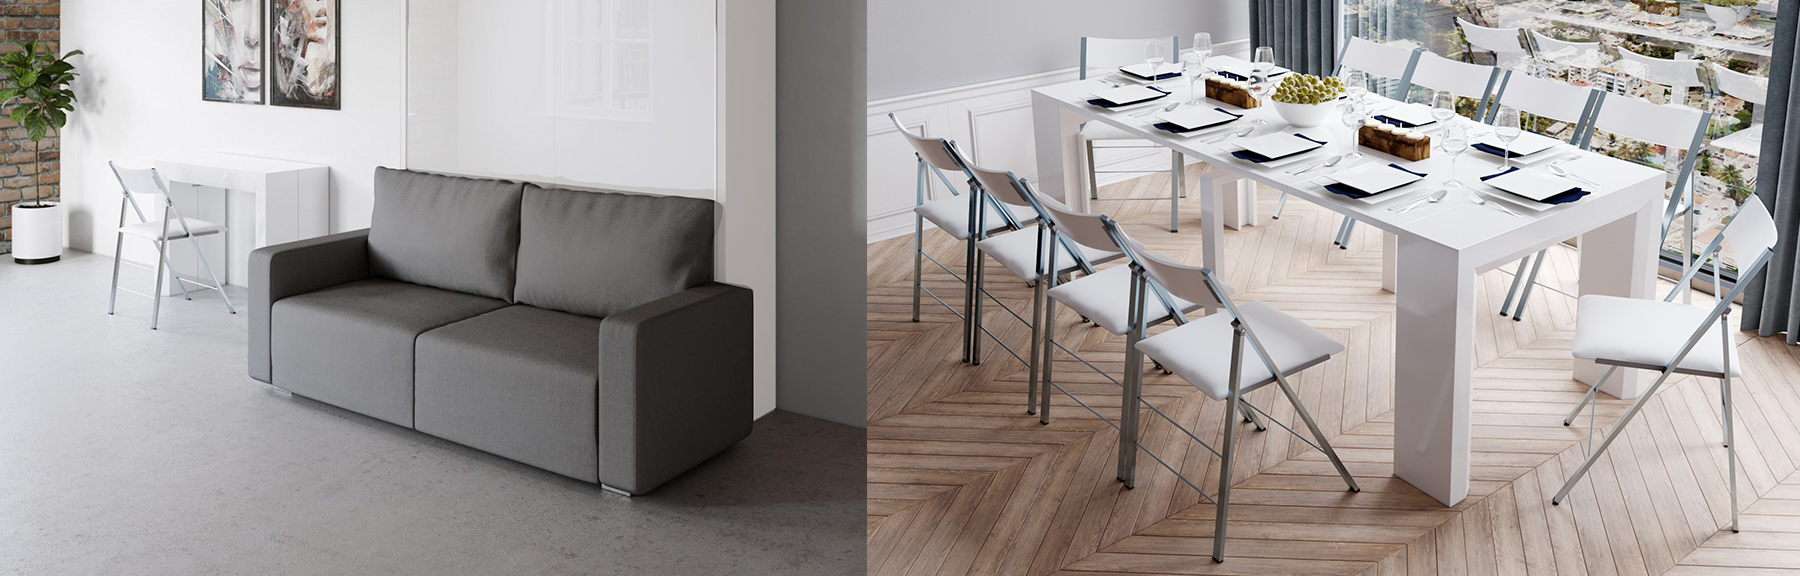 USA Space-saving-convertible-furniture-like-transforming-tables-wall-beds-with-sofa-shop extending-tables-by-Expand-Furniture